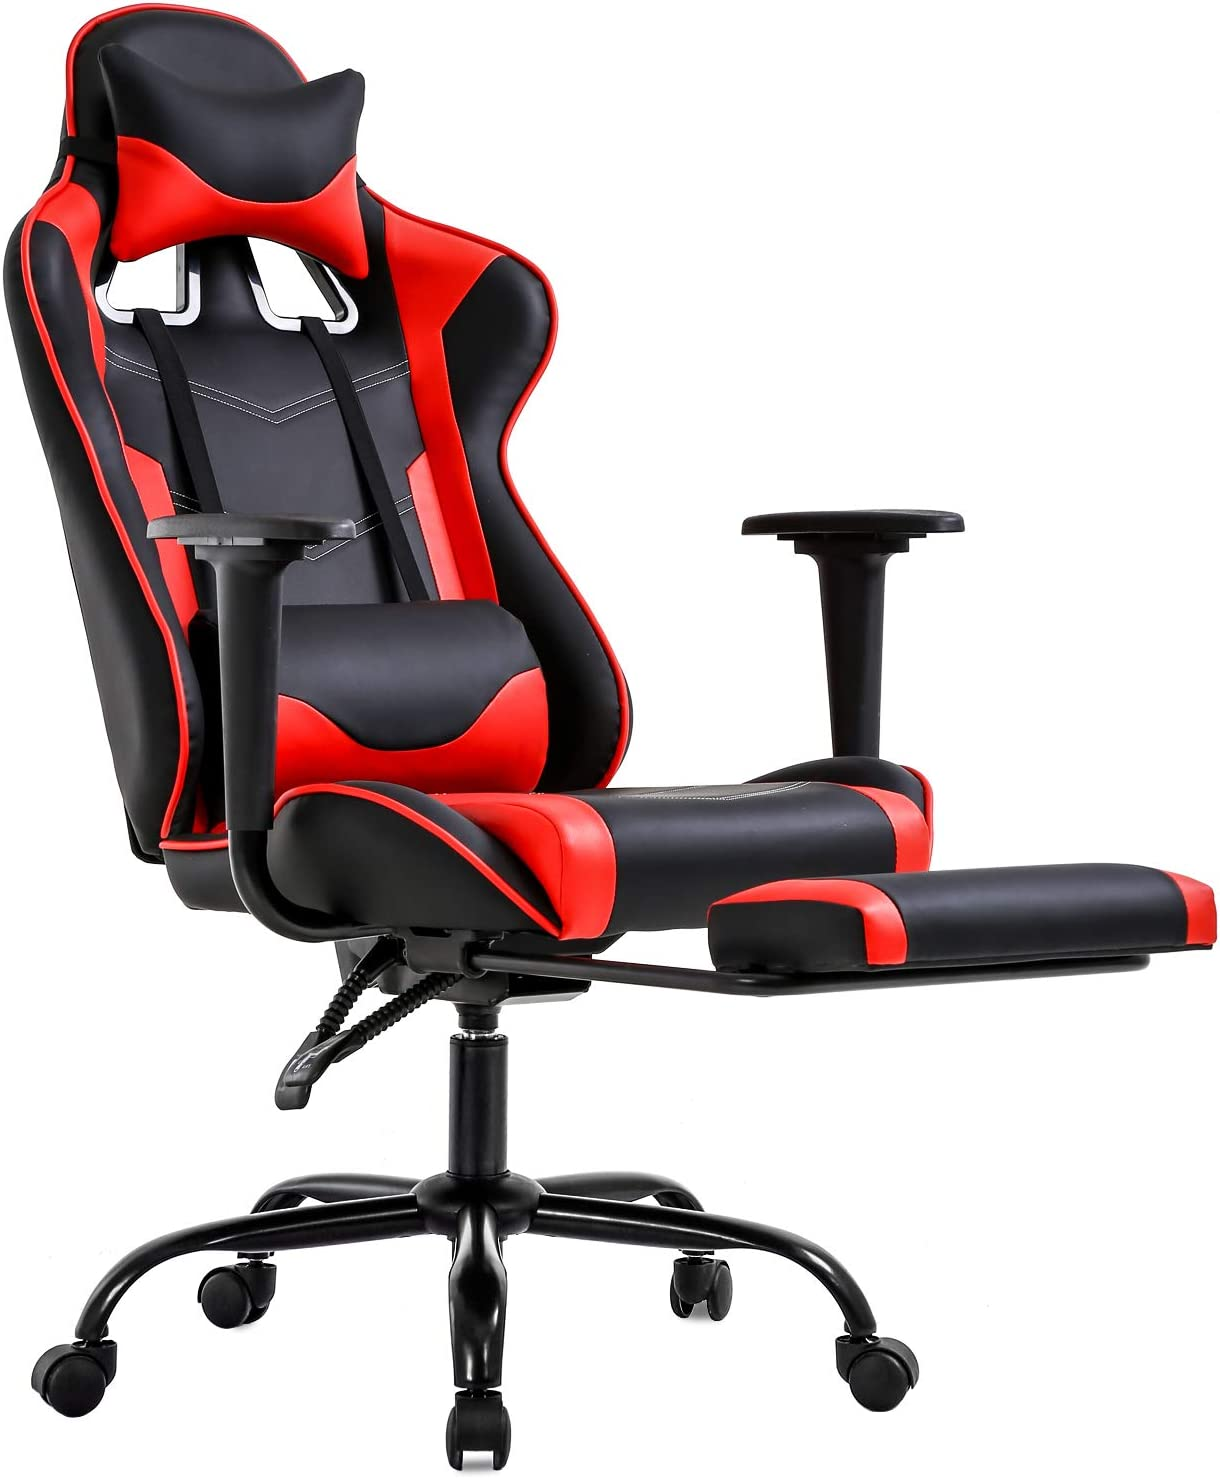 Gaming Chair with Footrest Arms Lumbar Support